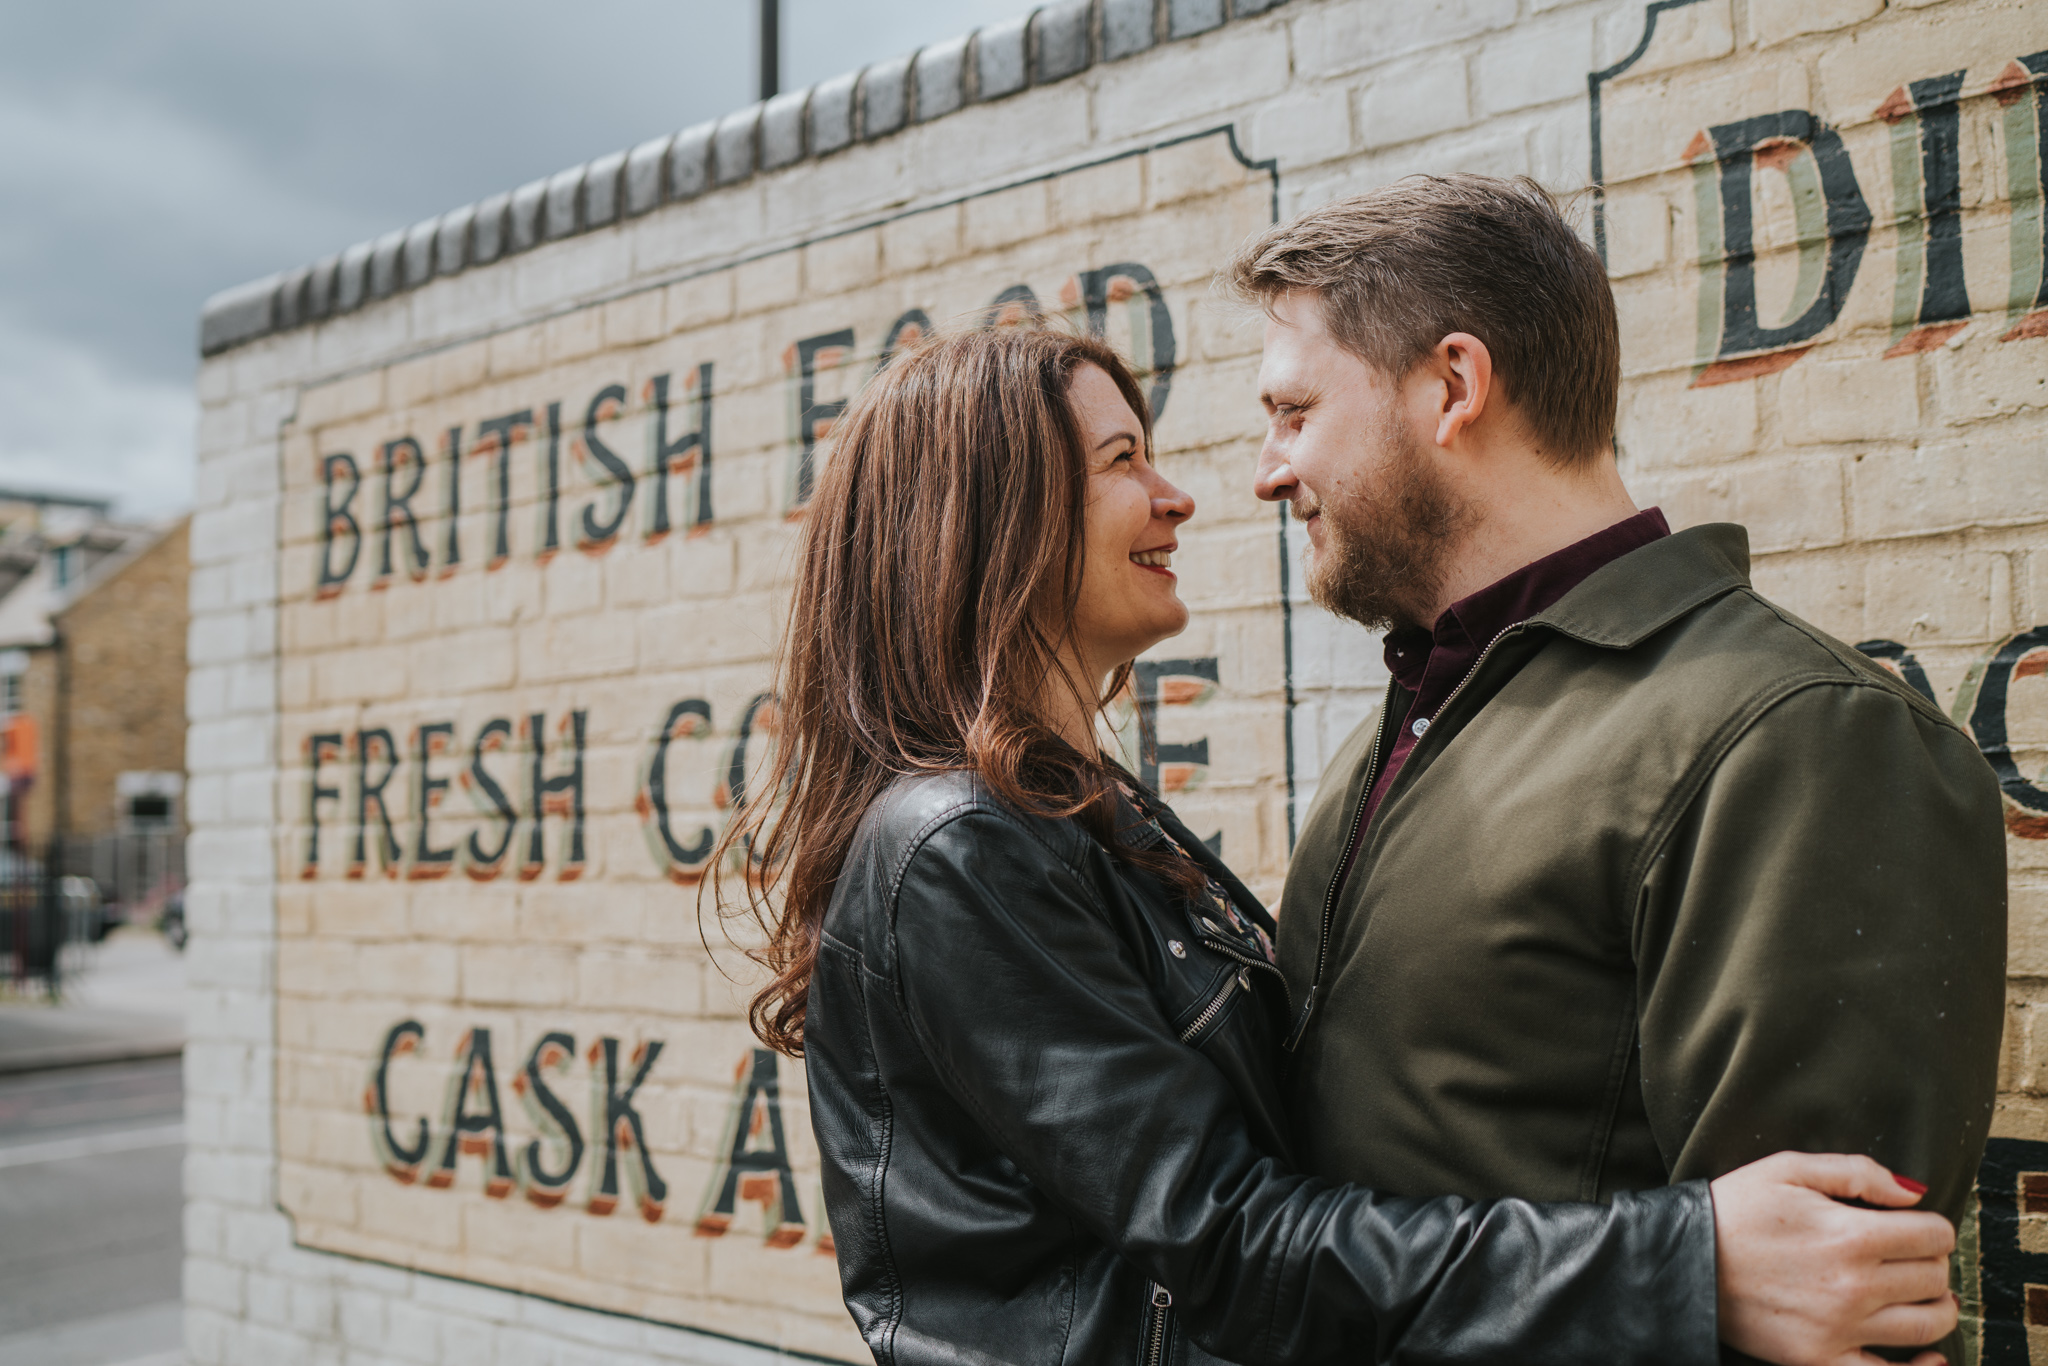 natalie-john-urban-london-engagement-grace-elizabeth-colchester-essex-alternative-wedding-photographer-essex-suffolk-norfolk-devon (42 of 66).jpg